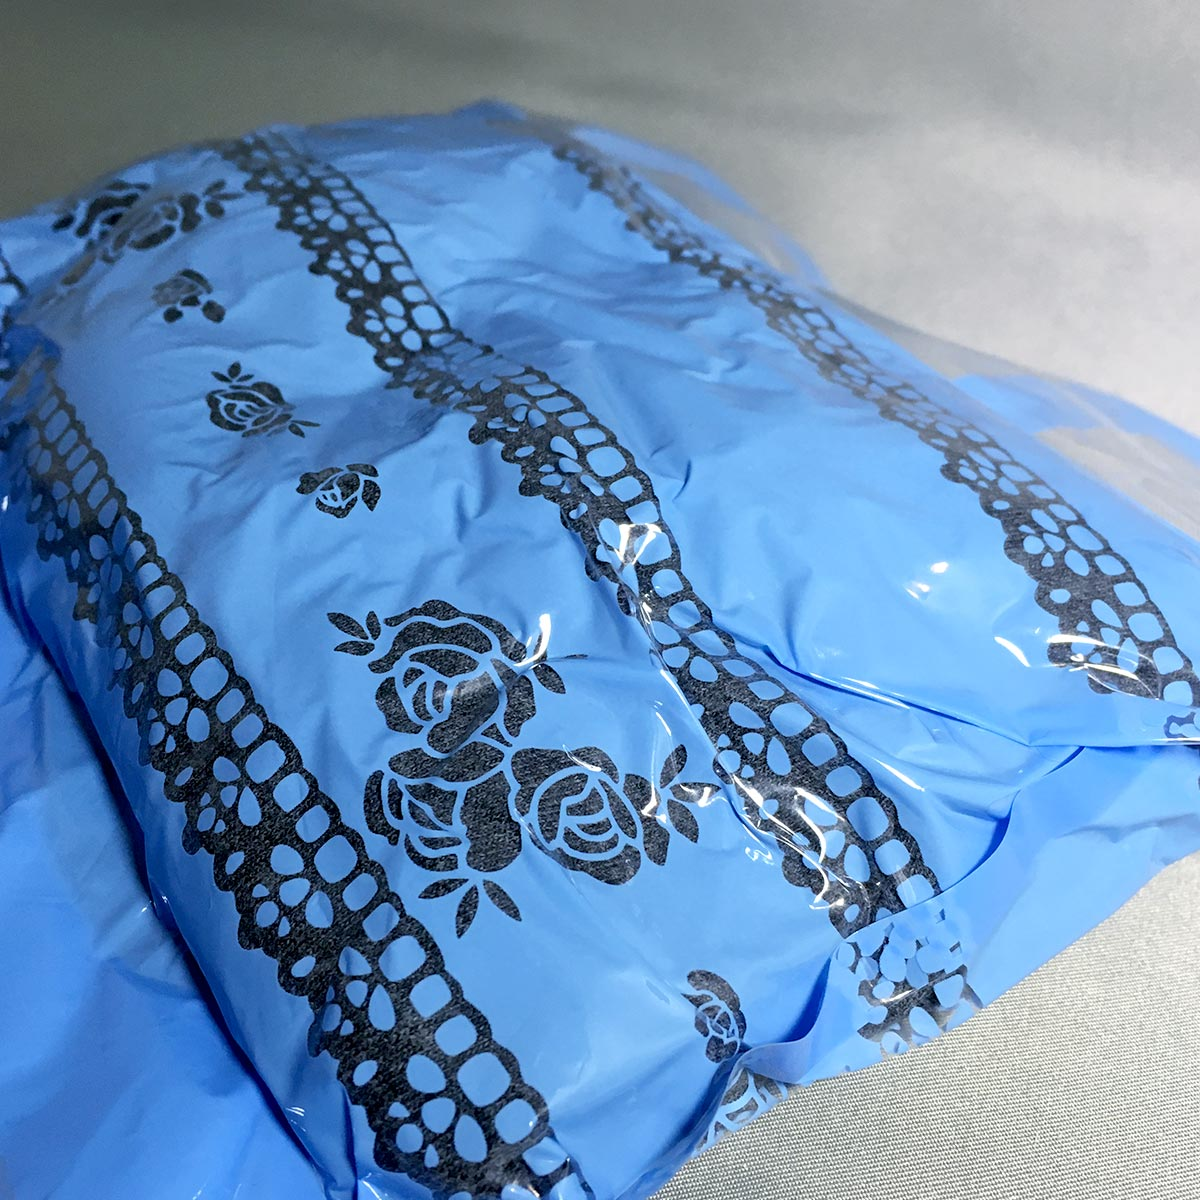 Portable Compression Bag - Bag with Tshirt fully Compressed close view